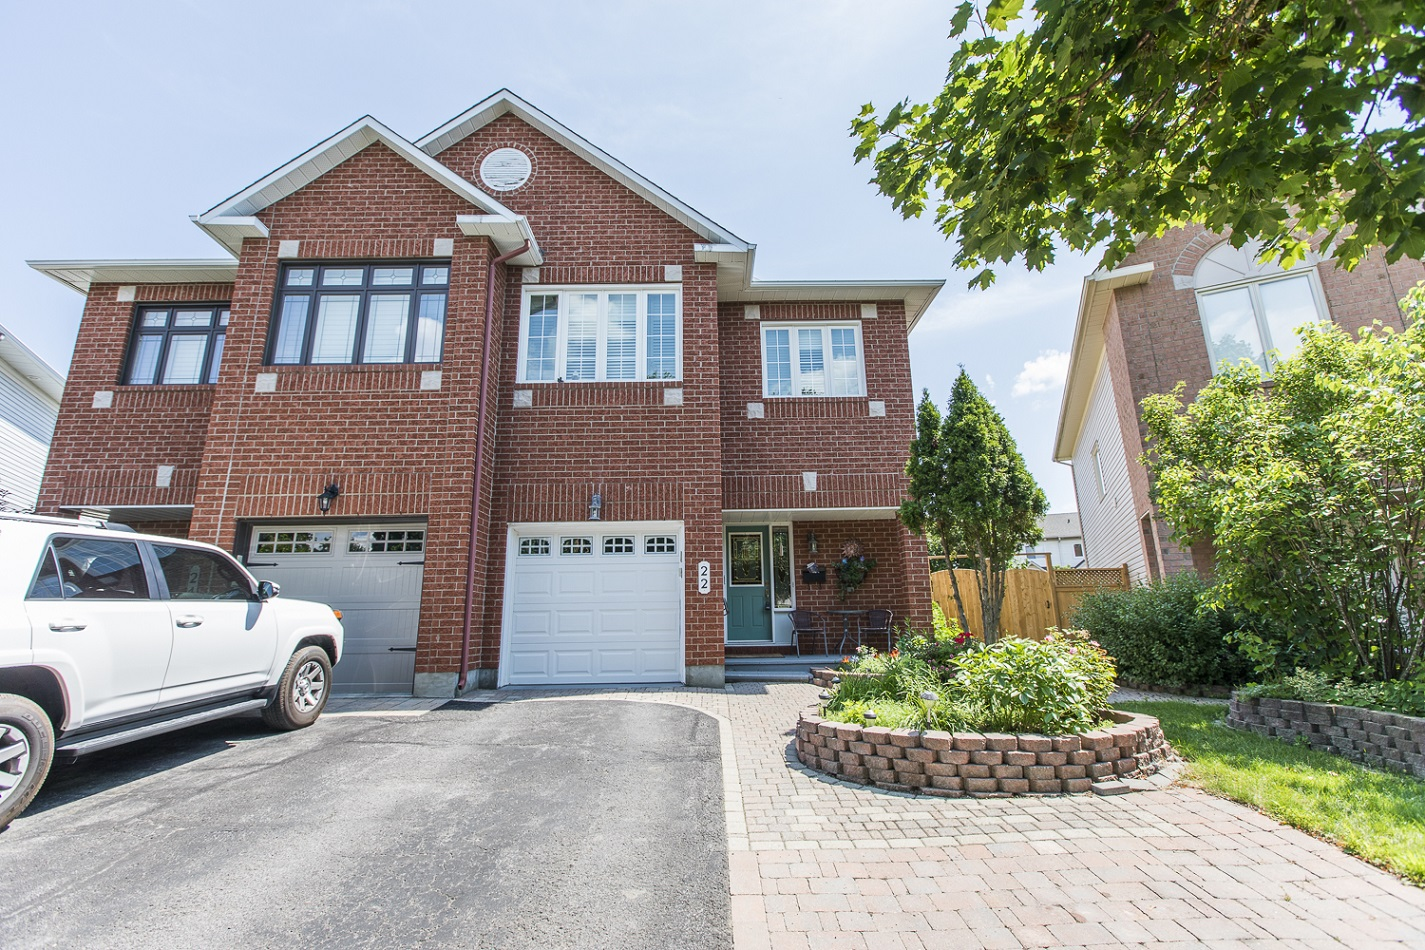 22 Eagleview Street | Bright and Spacious Semi-Detached Home in Emerald Woods